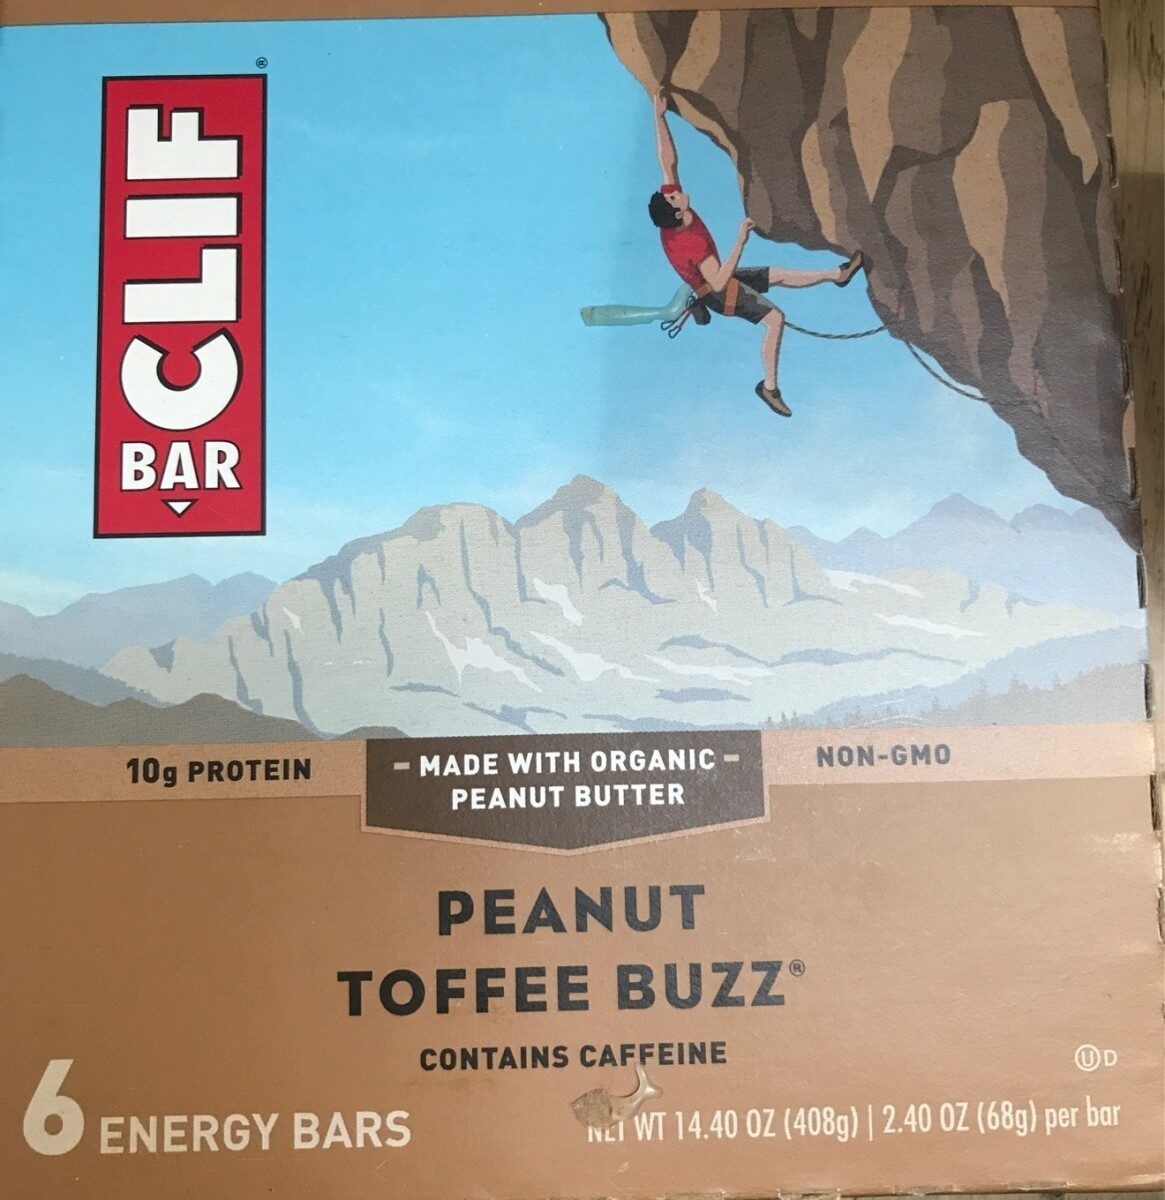 Peanut toffee buzz - Product